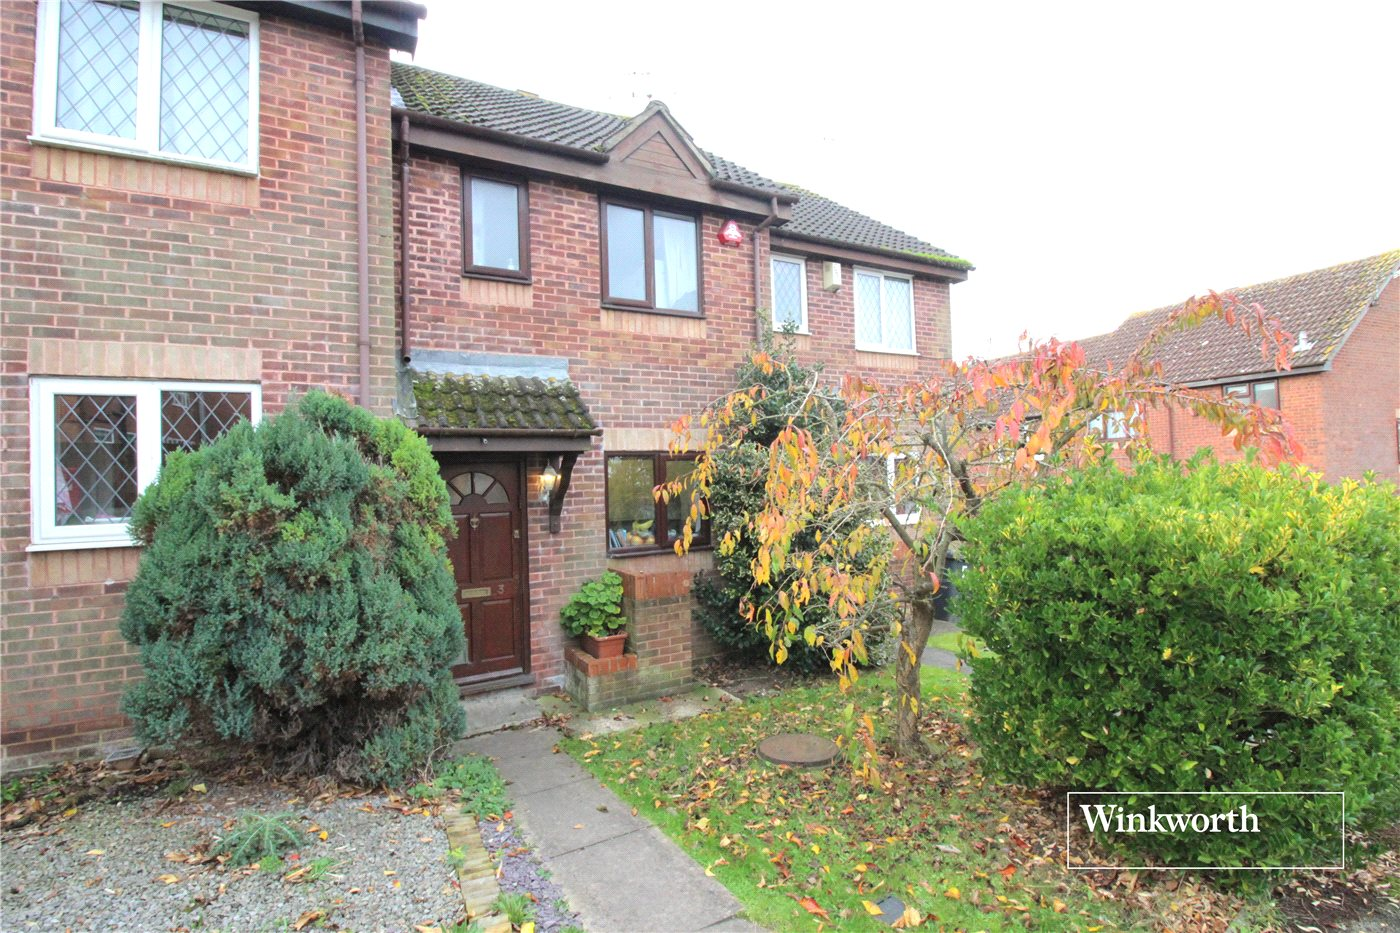 2 Bedrooms Terraced House for sale in Sawtry Way, Borehamwood, Hertfordshire, WD6